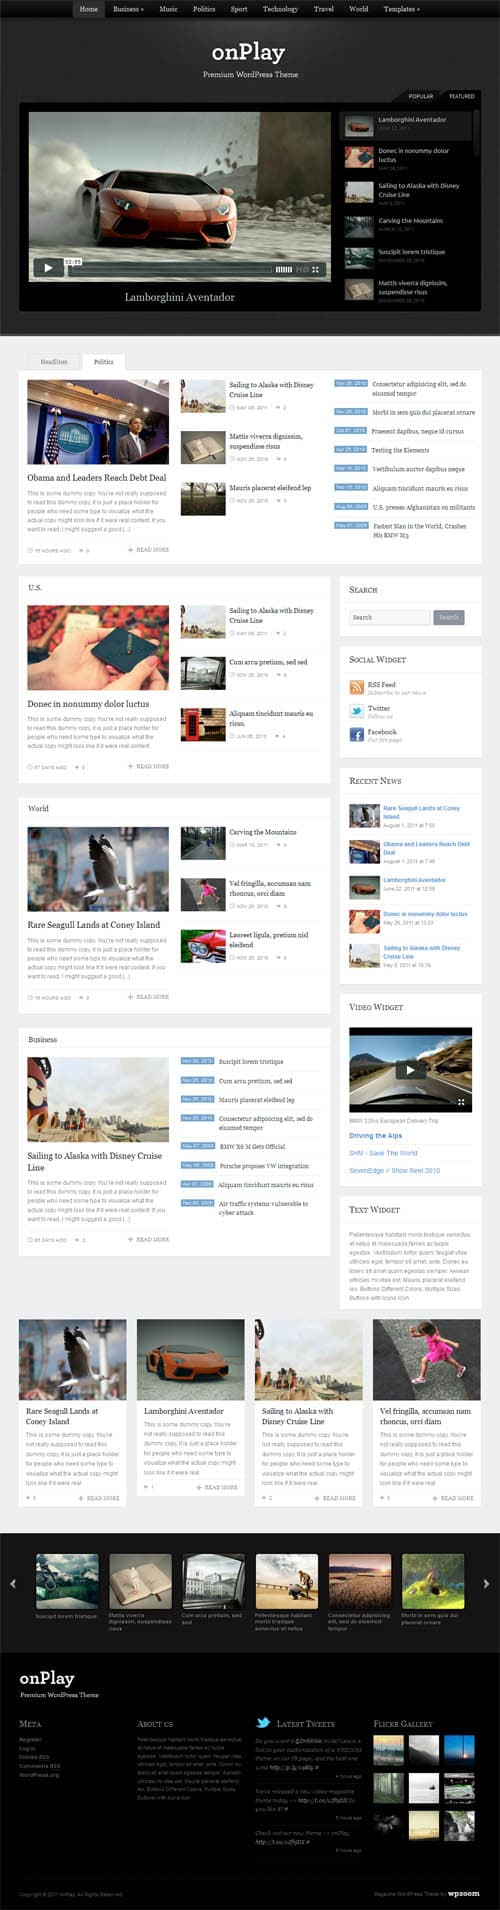 onplay-wordpress-theme